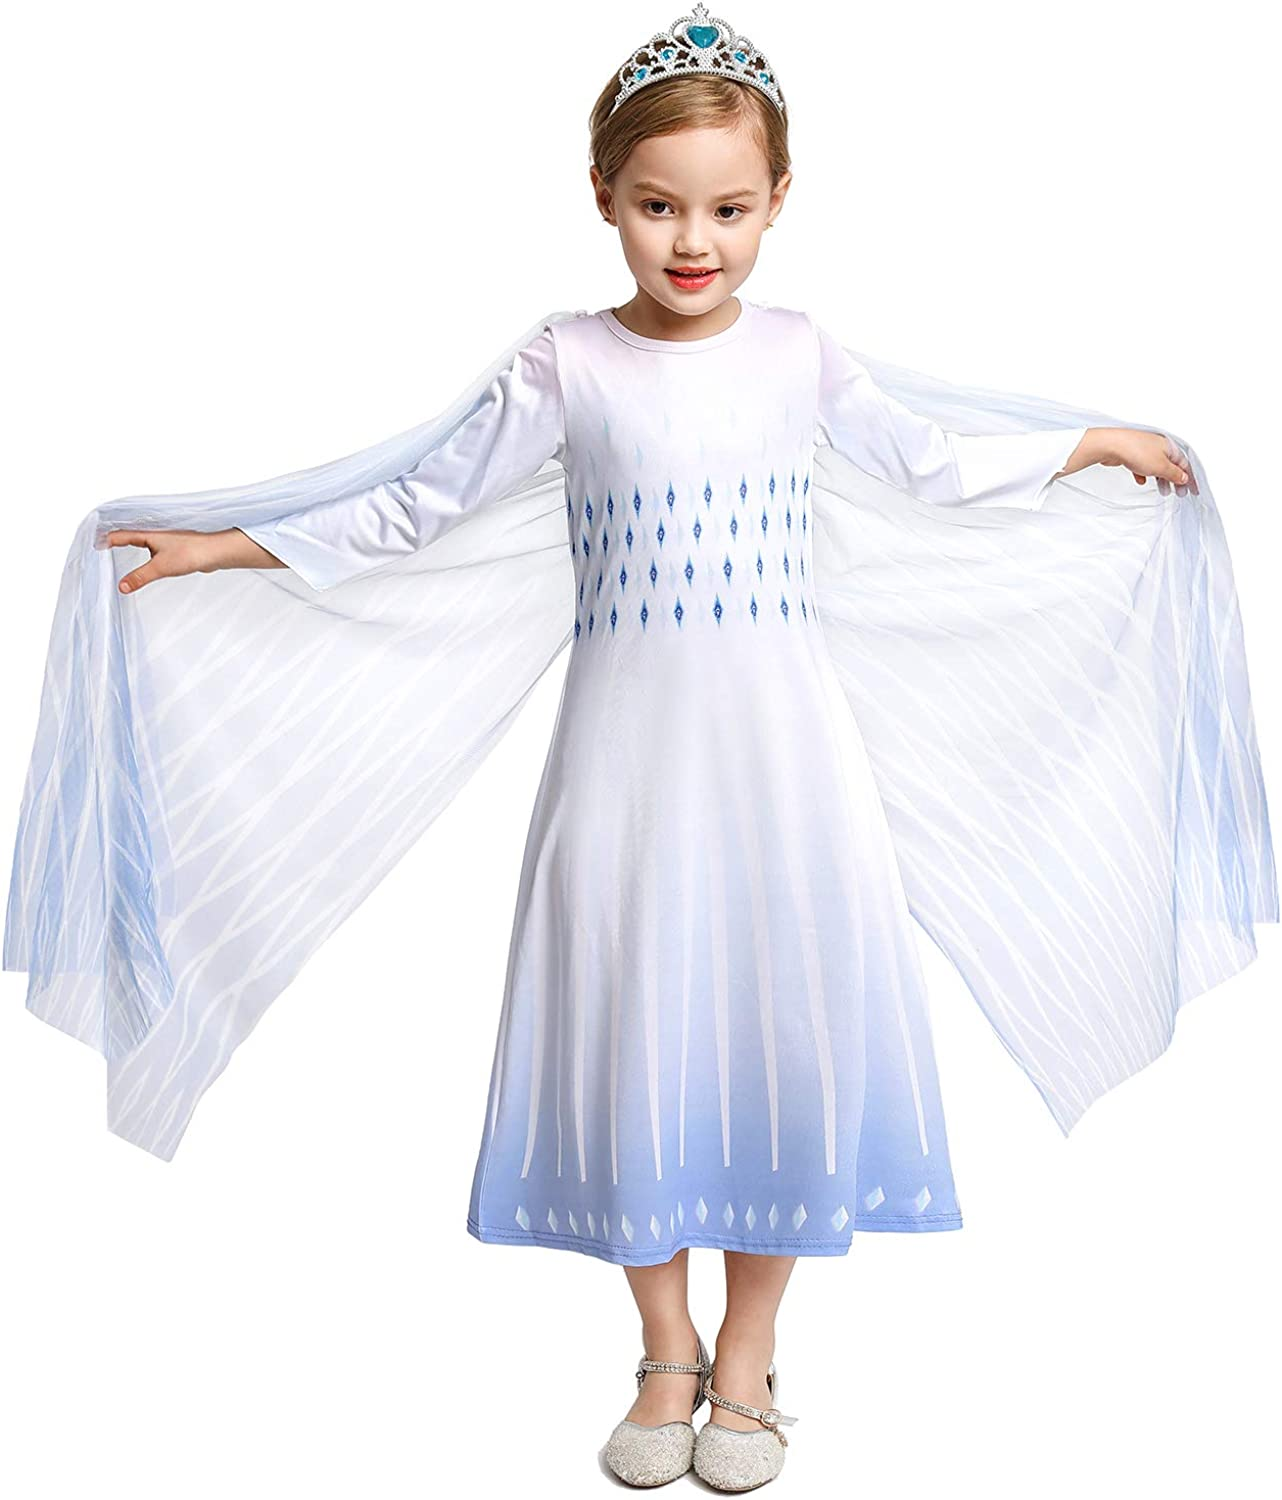 YOFEEL Little Girls Snow Princess Costume Queen Dress Up for Halloween Cosplay Party